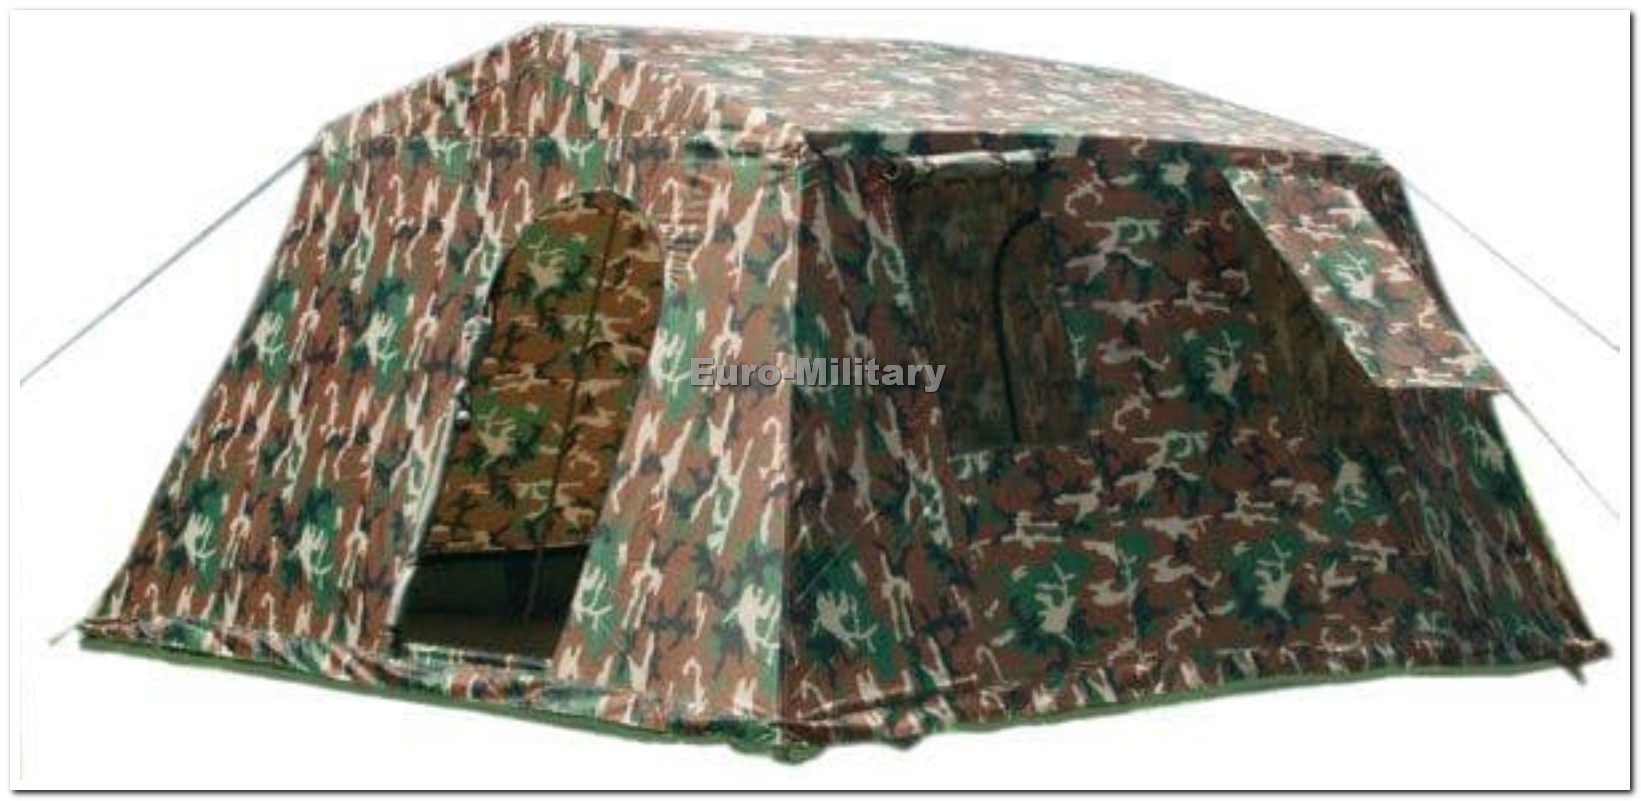 Military Army Outdoor Large BaseCamp Tent Shelter 6 Person - Woodland